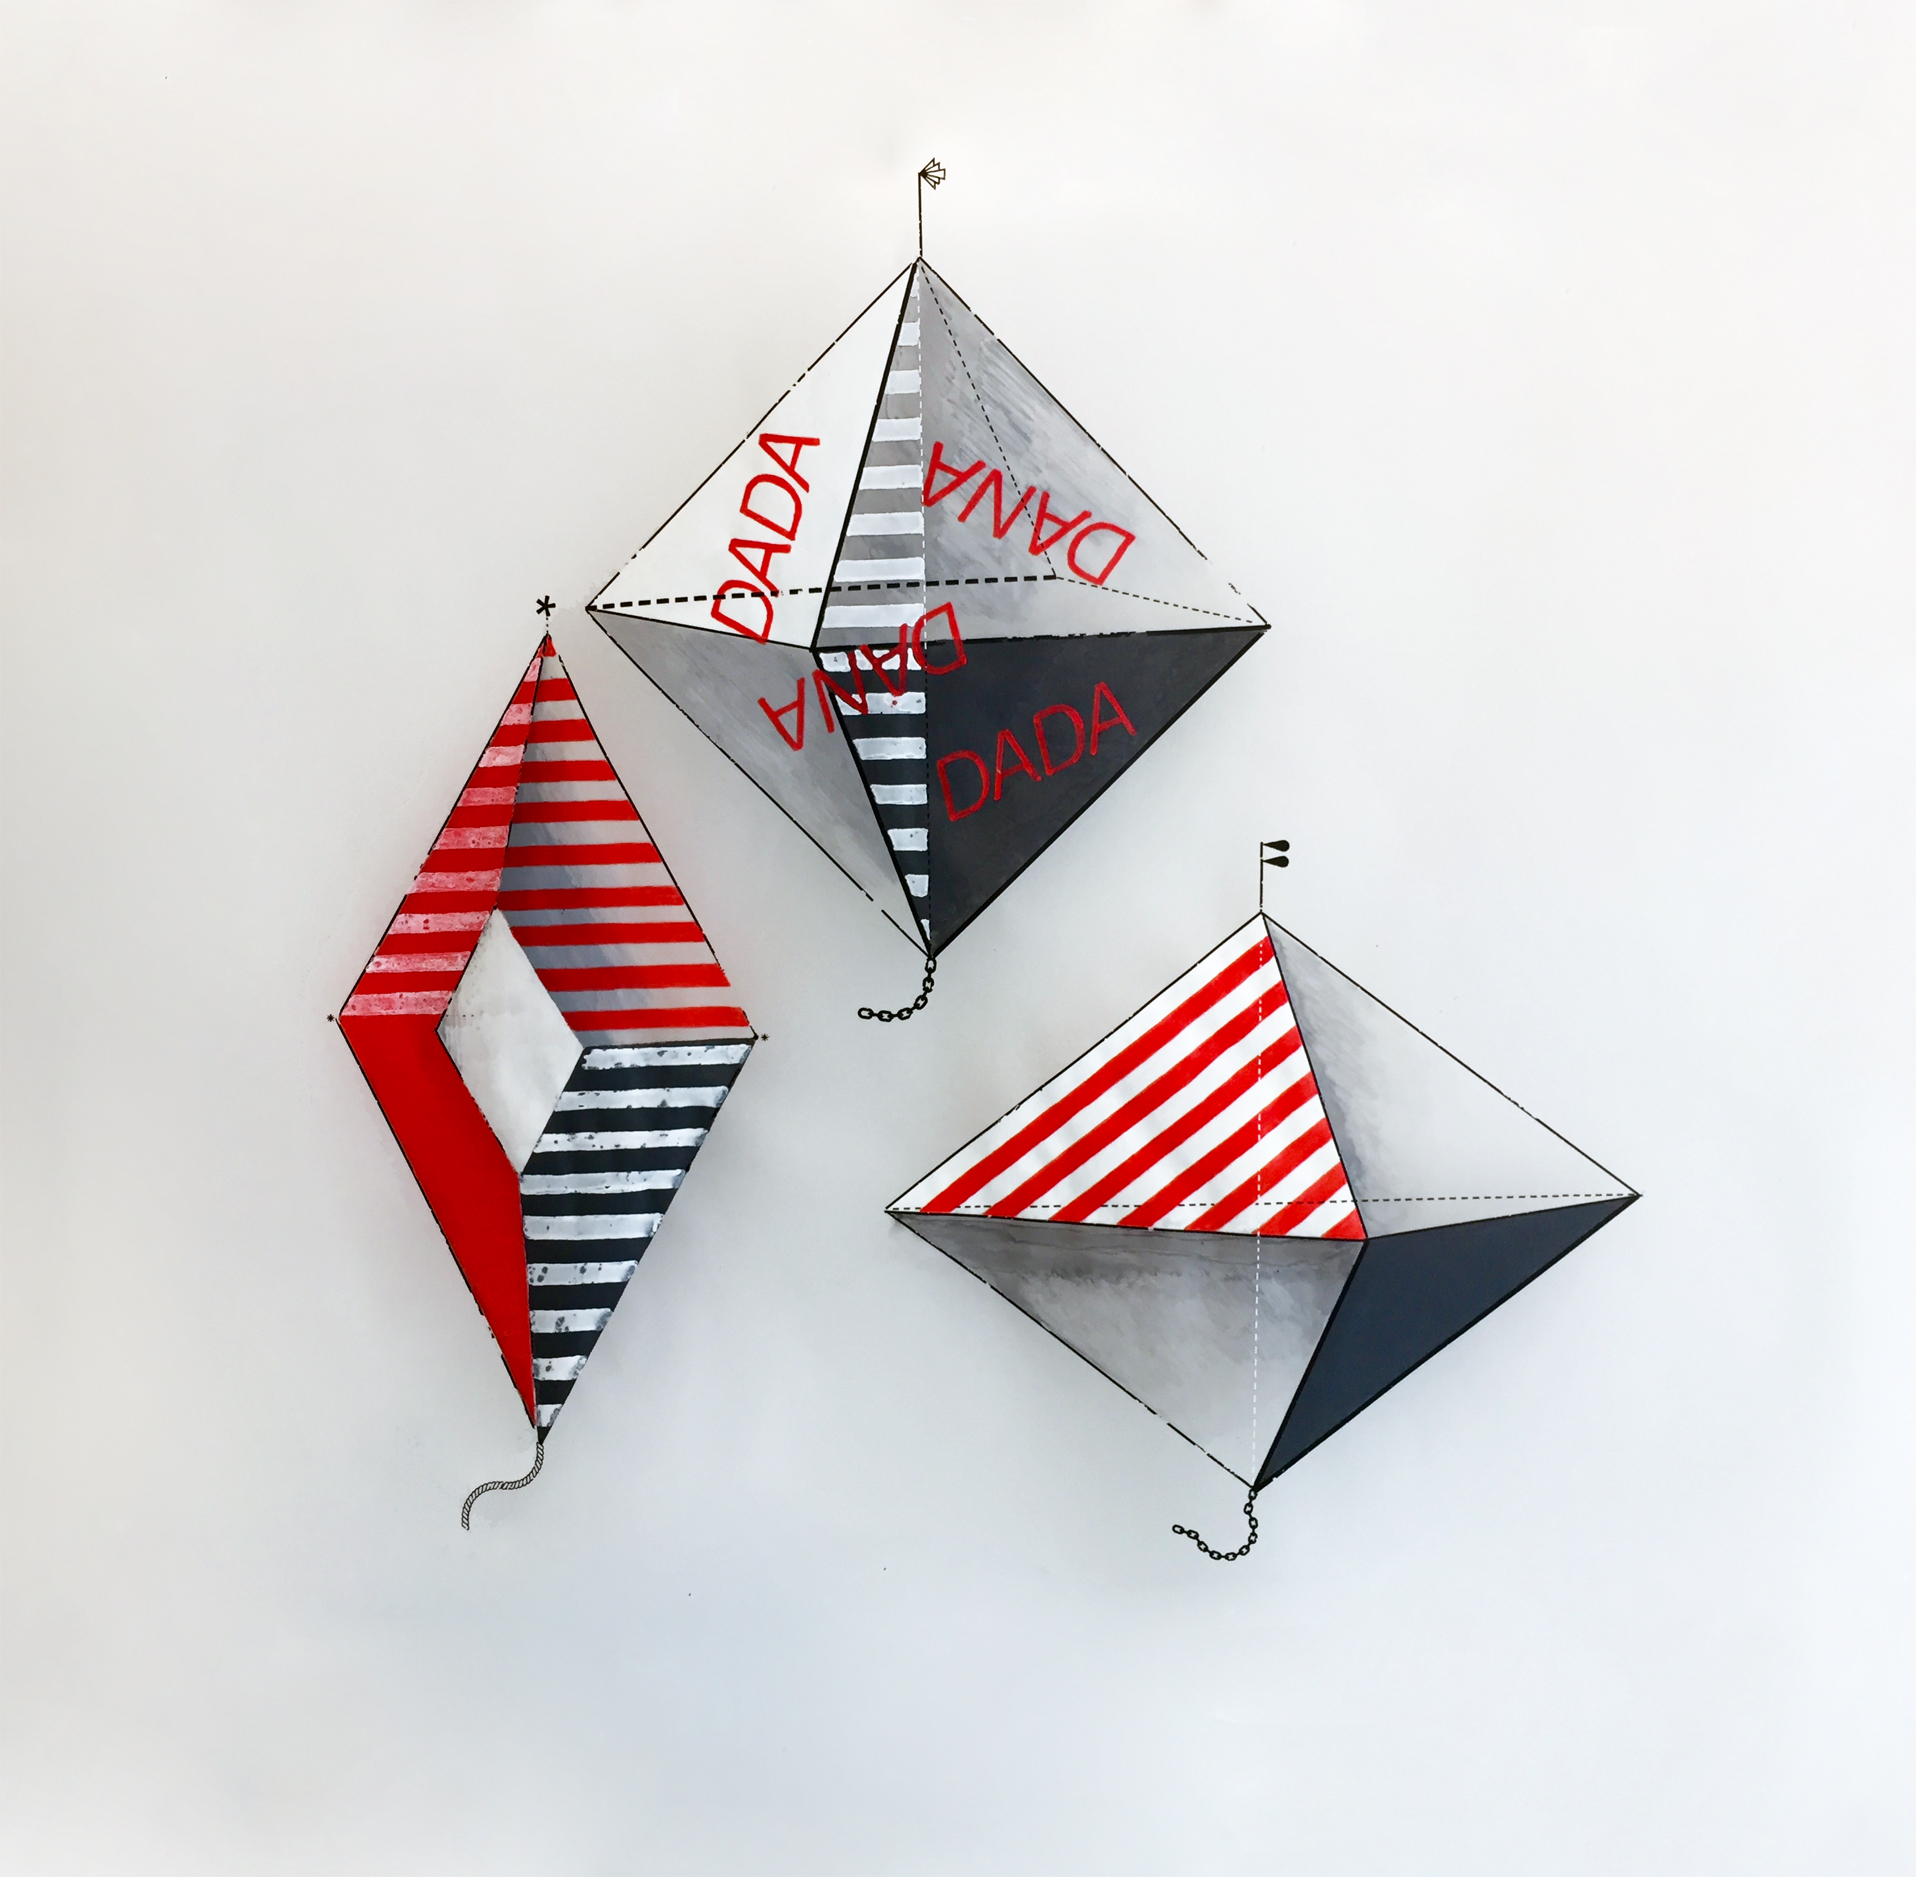 More Kites/Flying Objects 2018